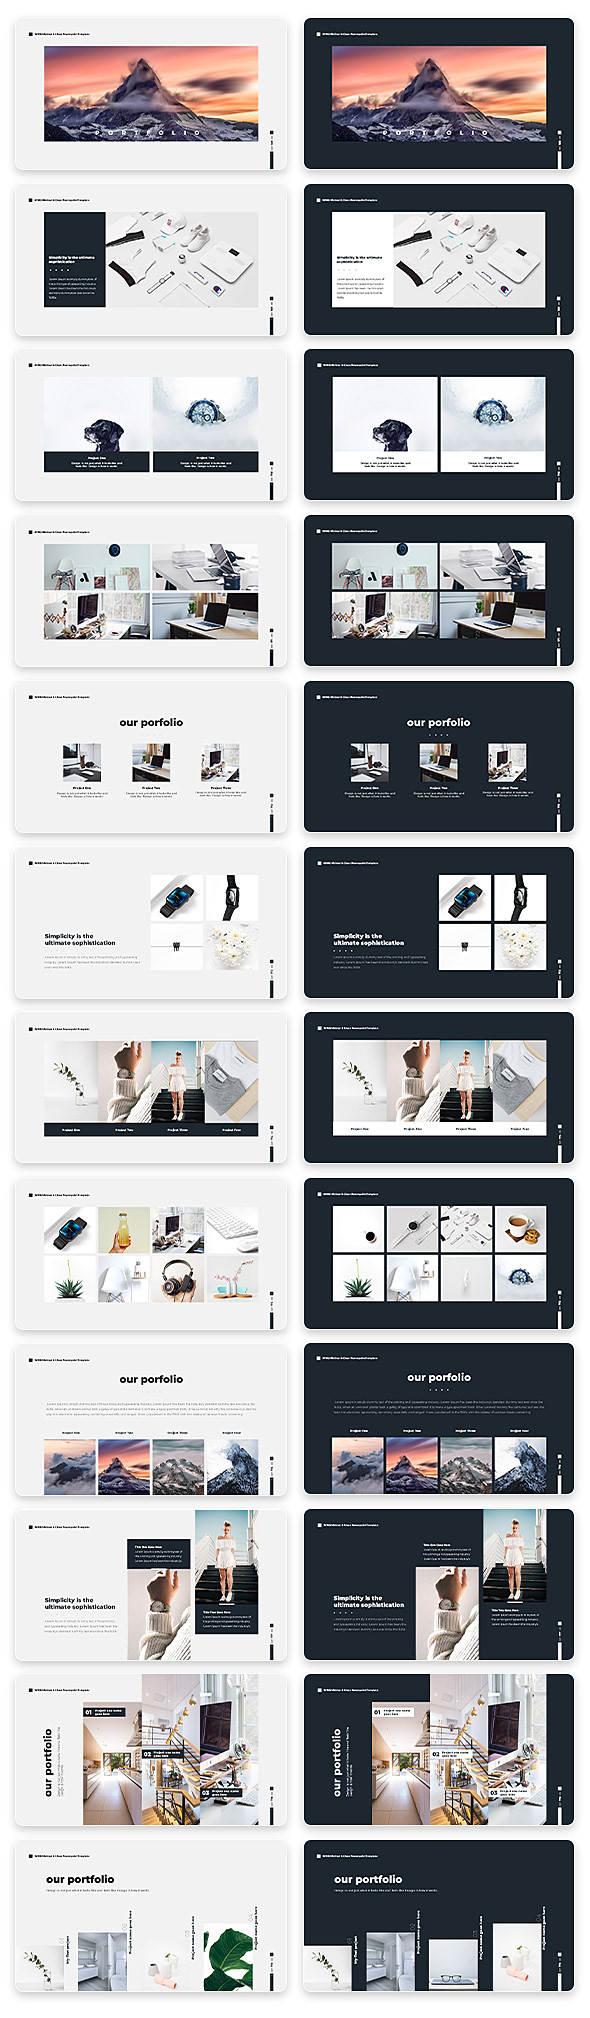 Wind Minimal & Clean Powerpoint With Text Animation Pack - 12